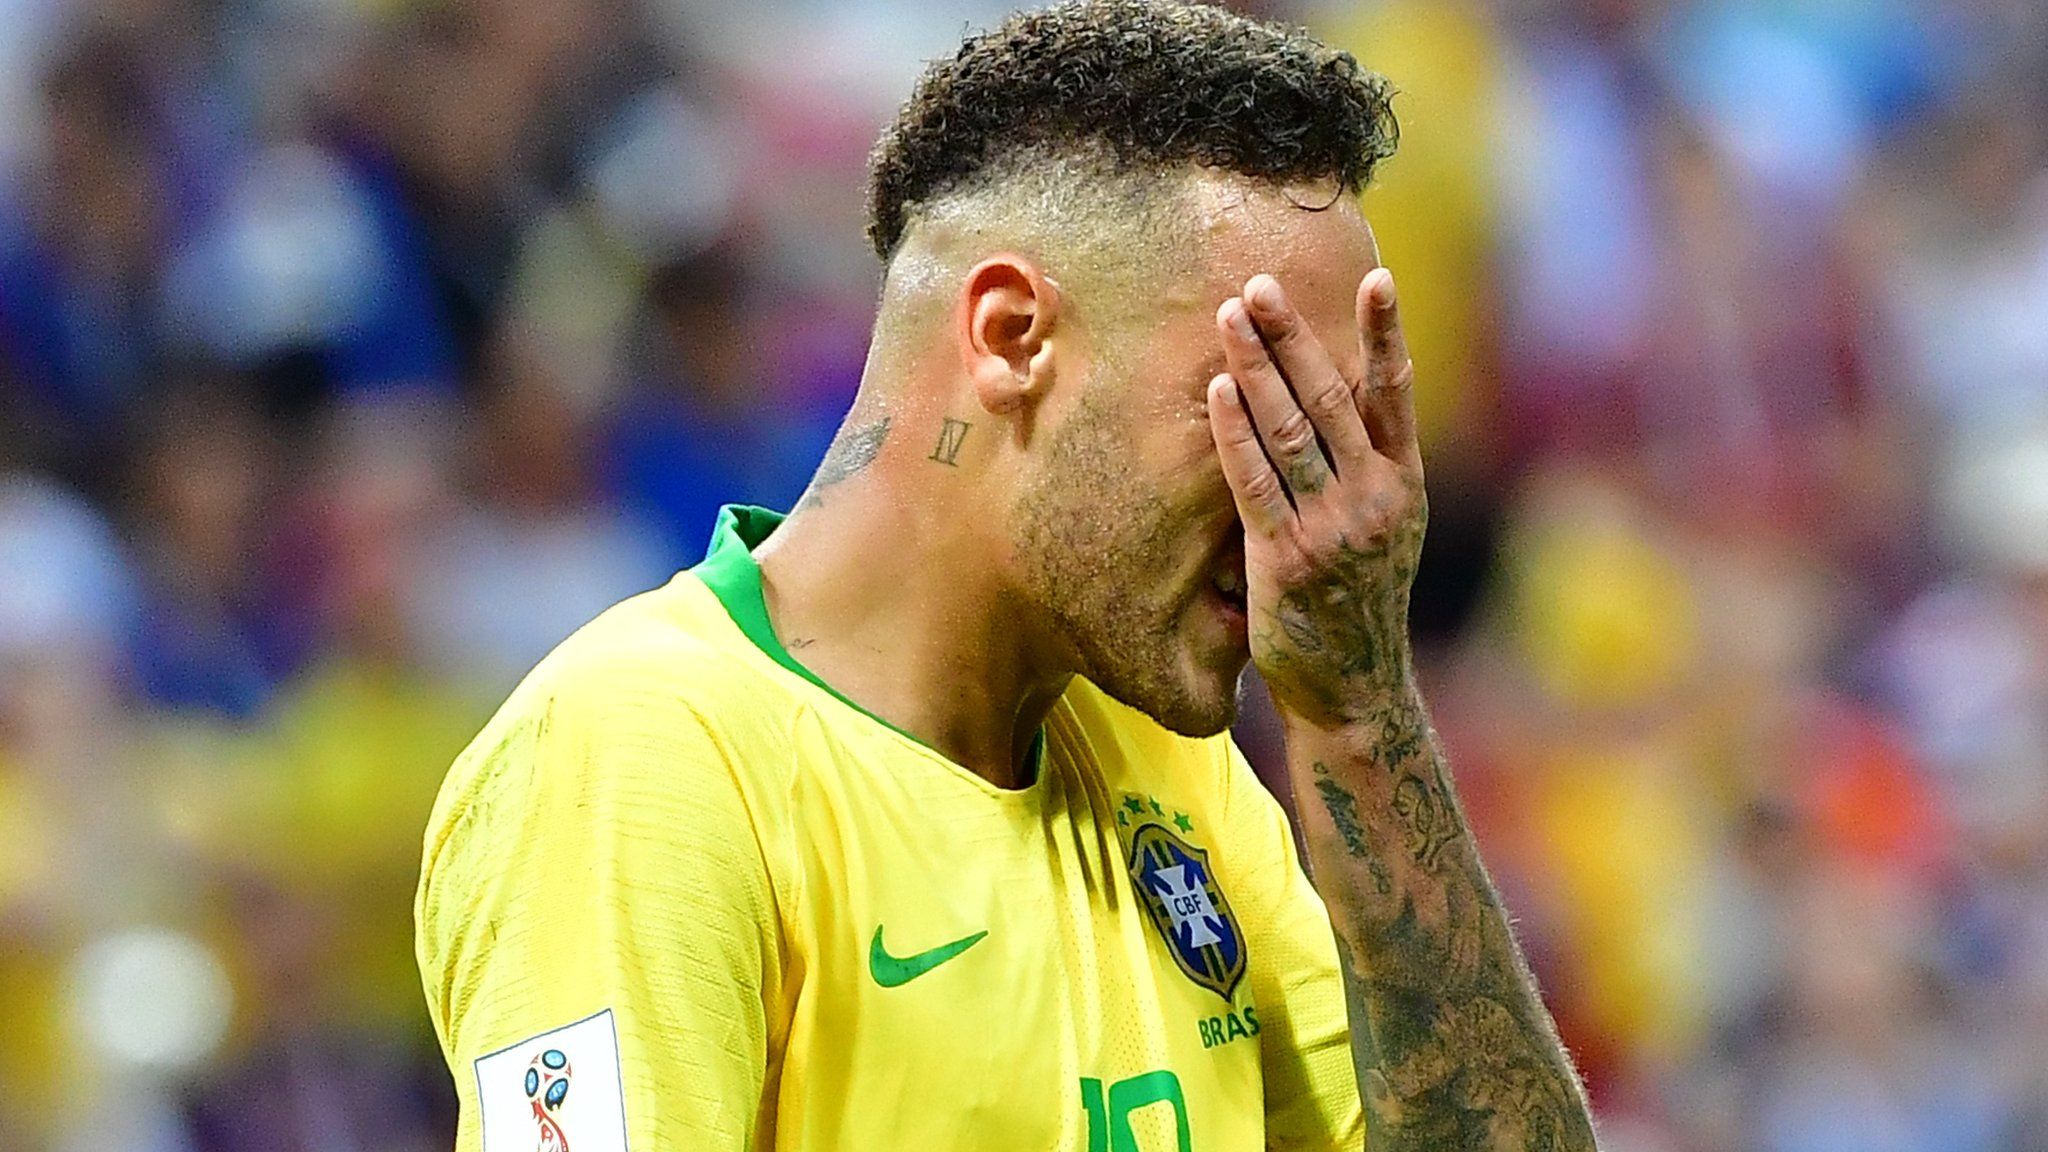 Neymar: Brazil's World Cup exit left me in mourning, says PSG striker